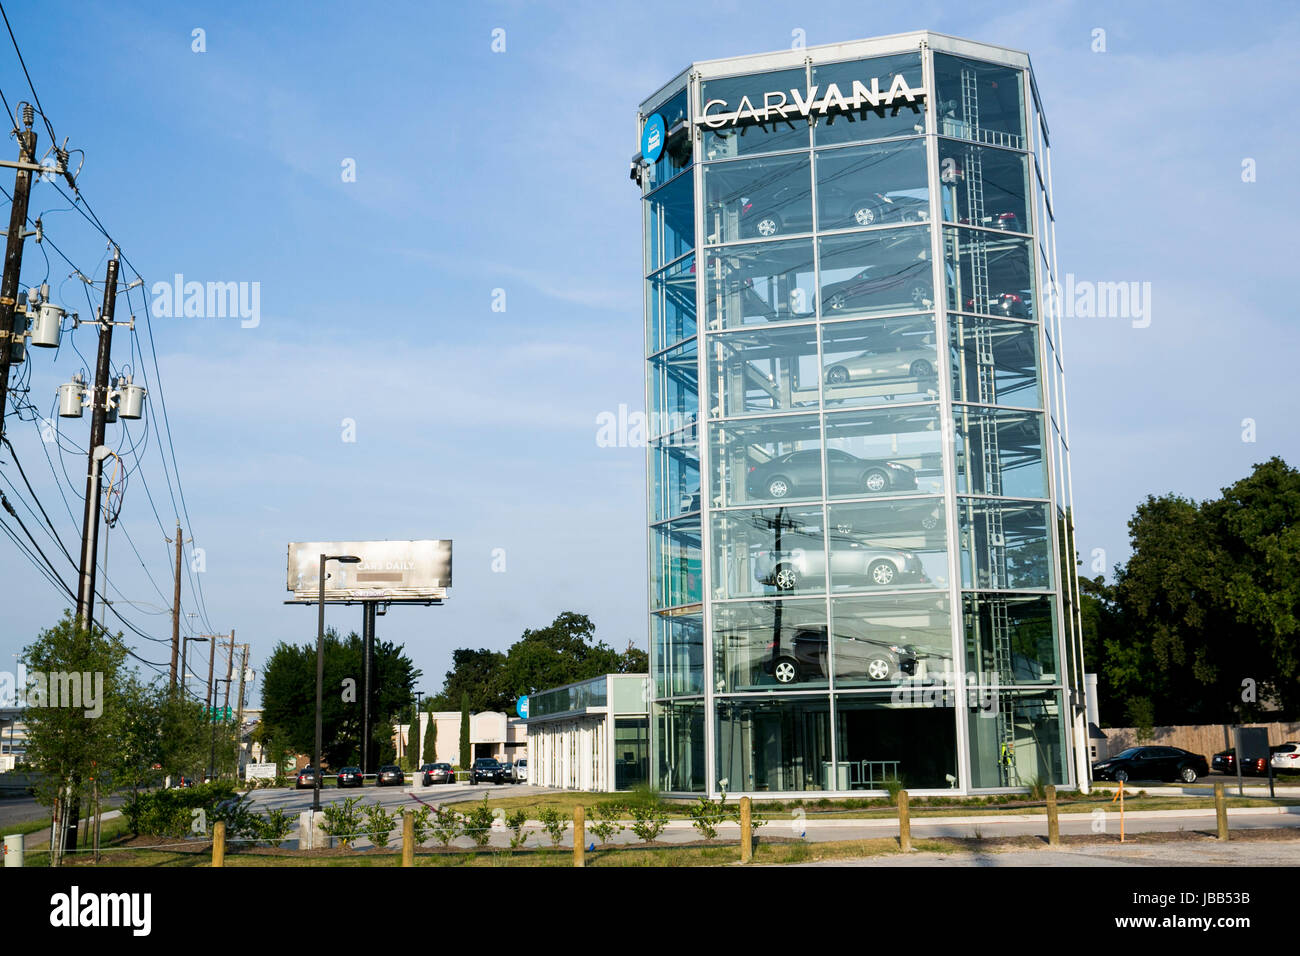 A Carvana car vending machine location in Houston, Texas, on May 27, 2017. Stock Photo